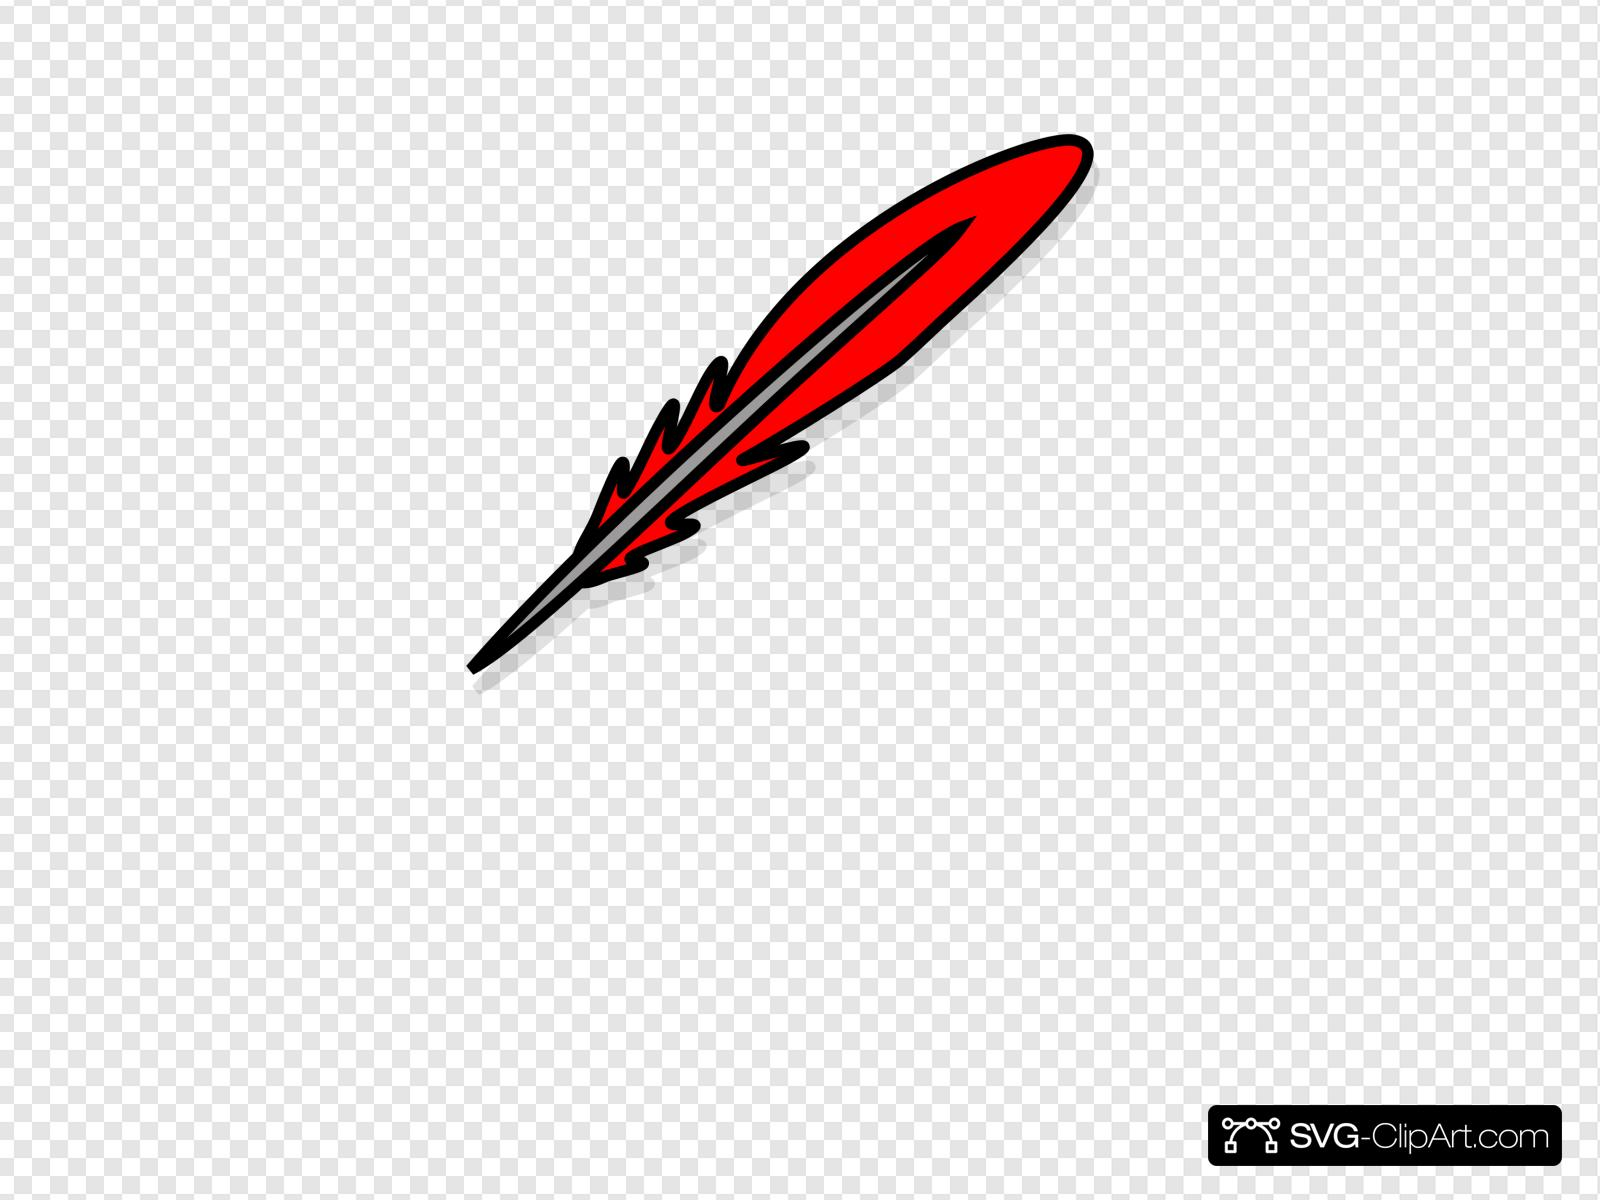 Red feather clipart clipart free stock Red Feather 2 Clip art, Icon and SVG - SVG Clipart clipart free stock